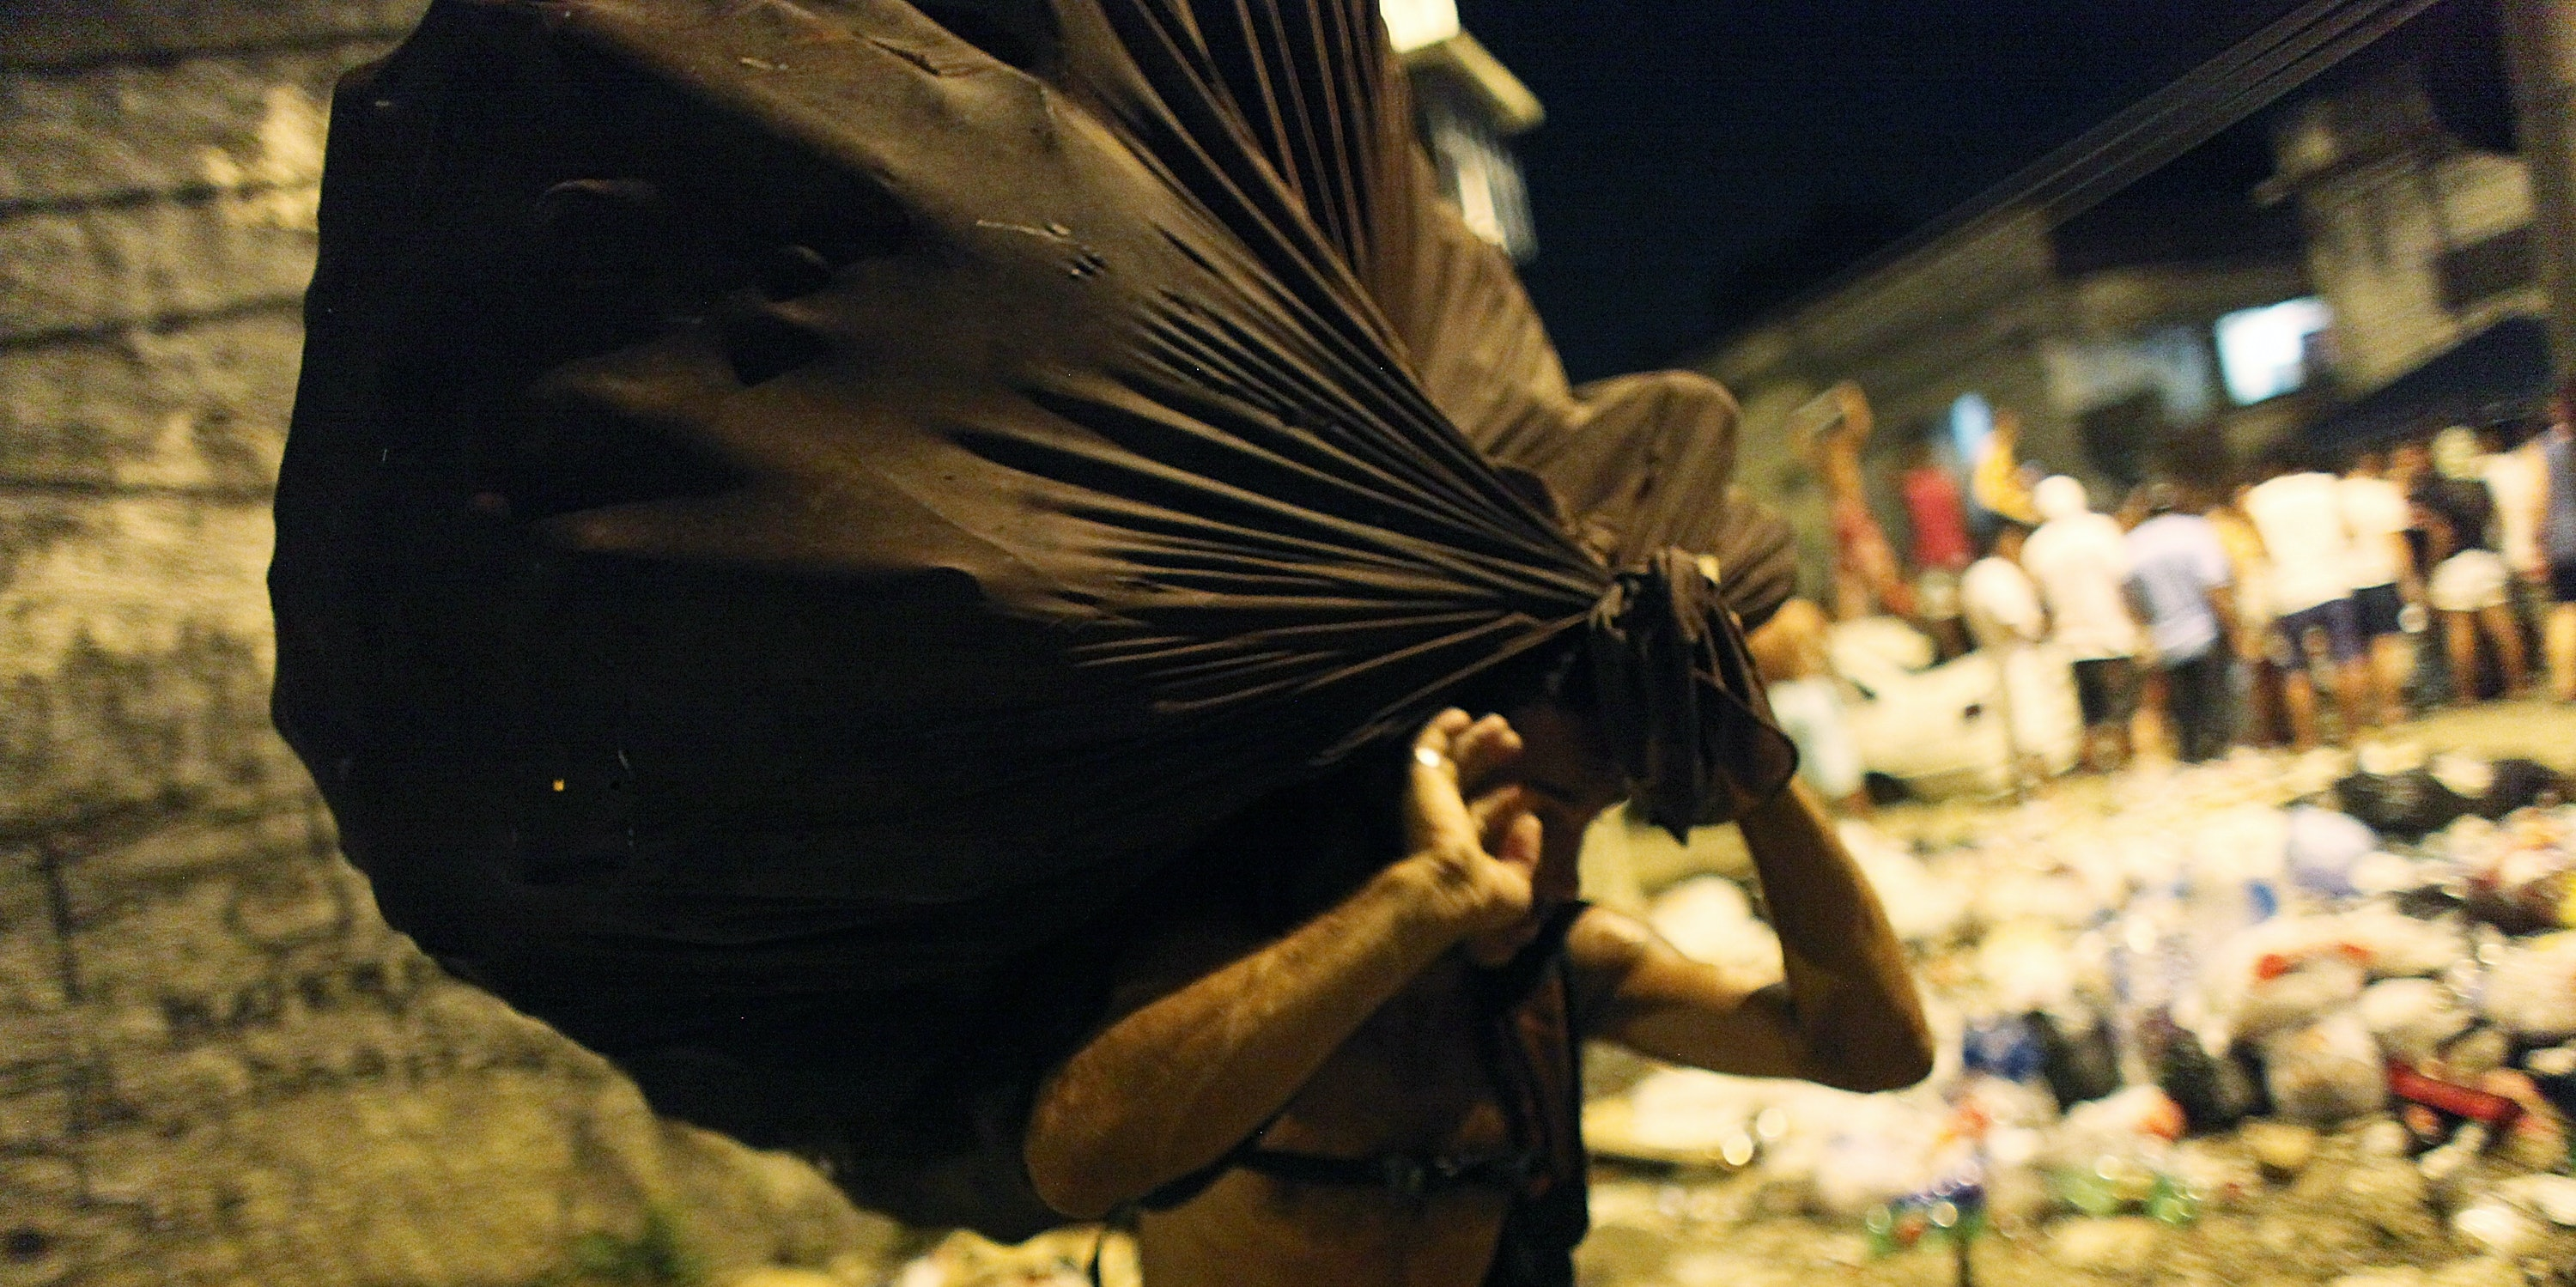 A waste picker carries a bag of collected recyclables past a street party thrown one block away from Rio's main red light district, Vila Mimosa.